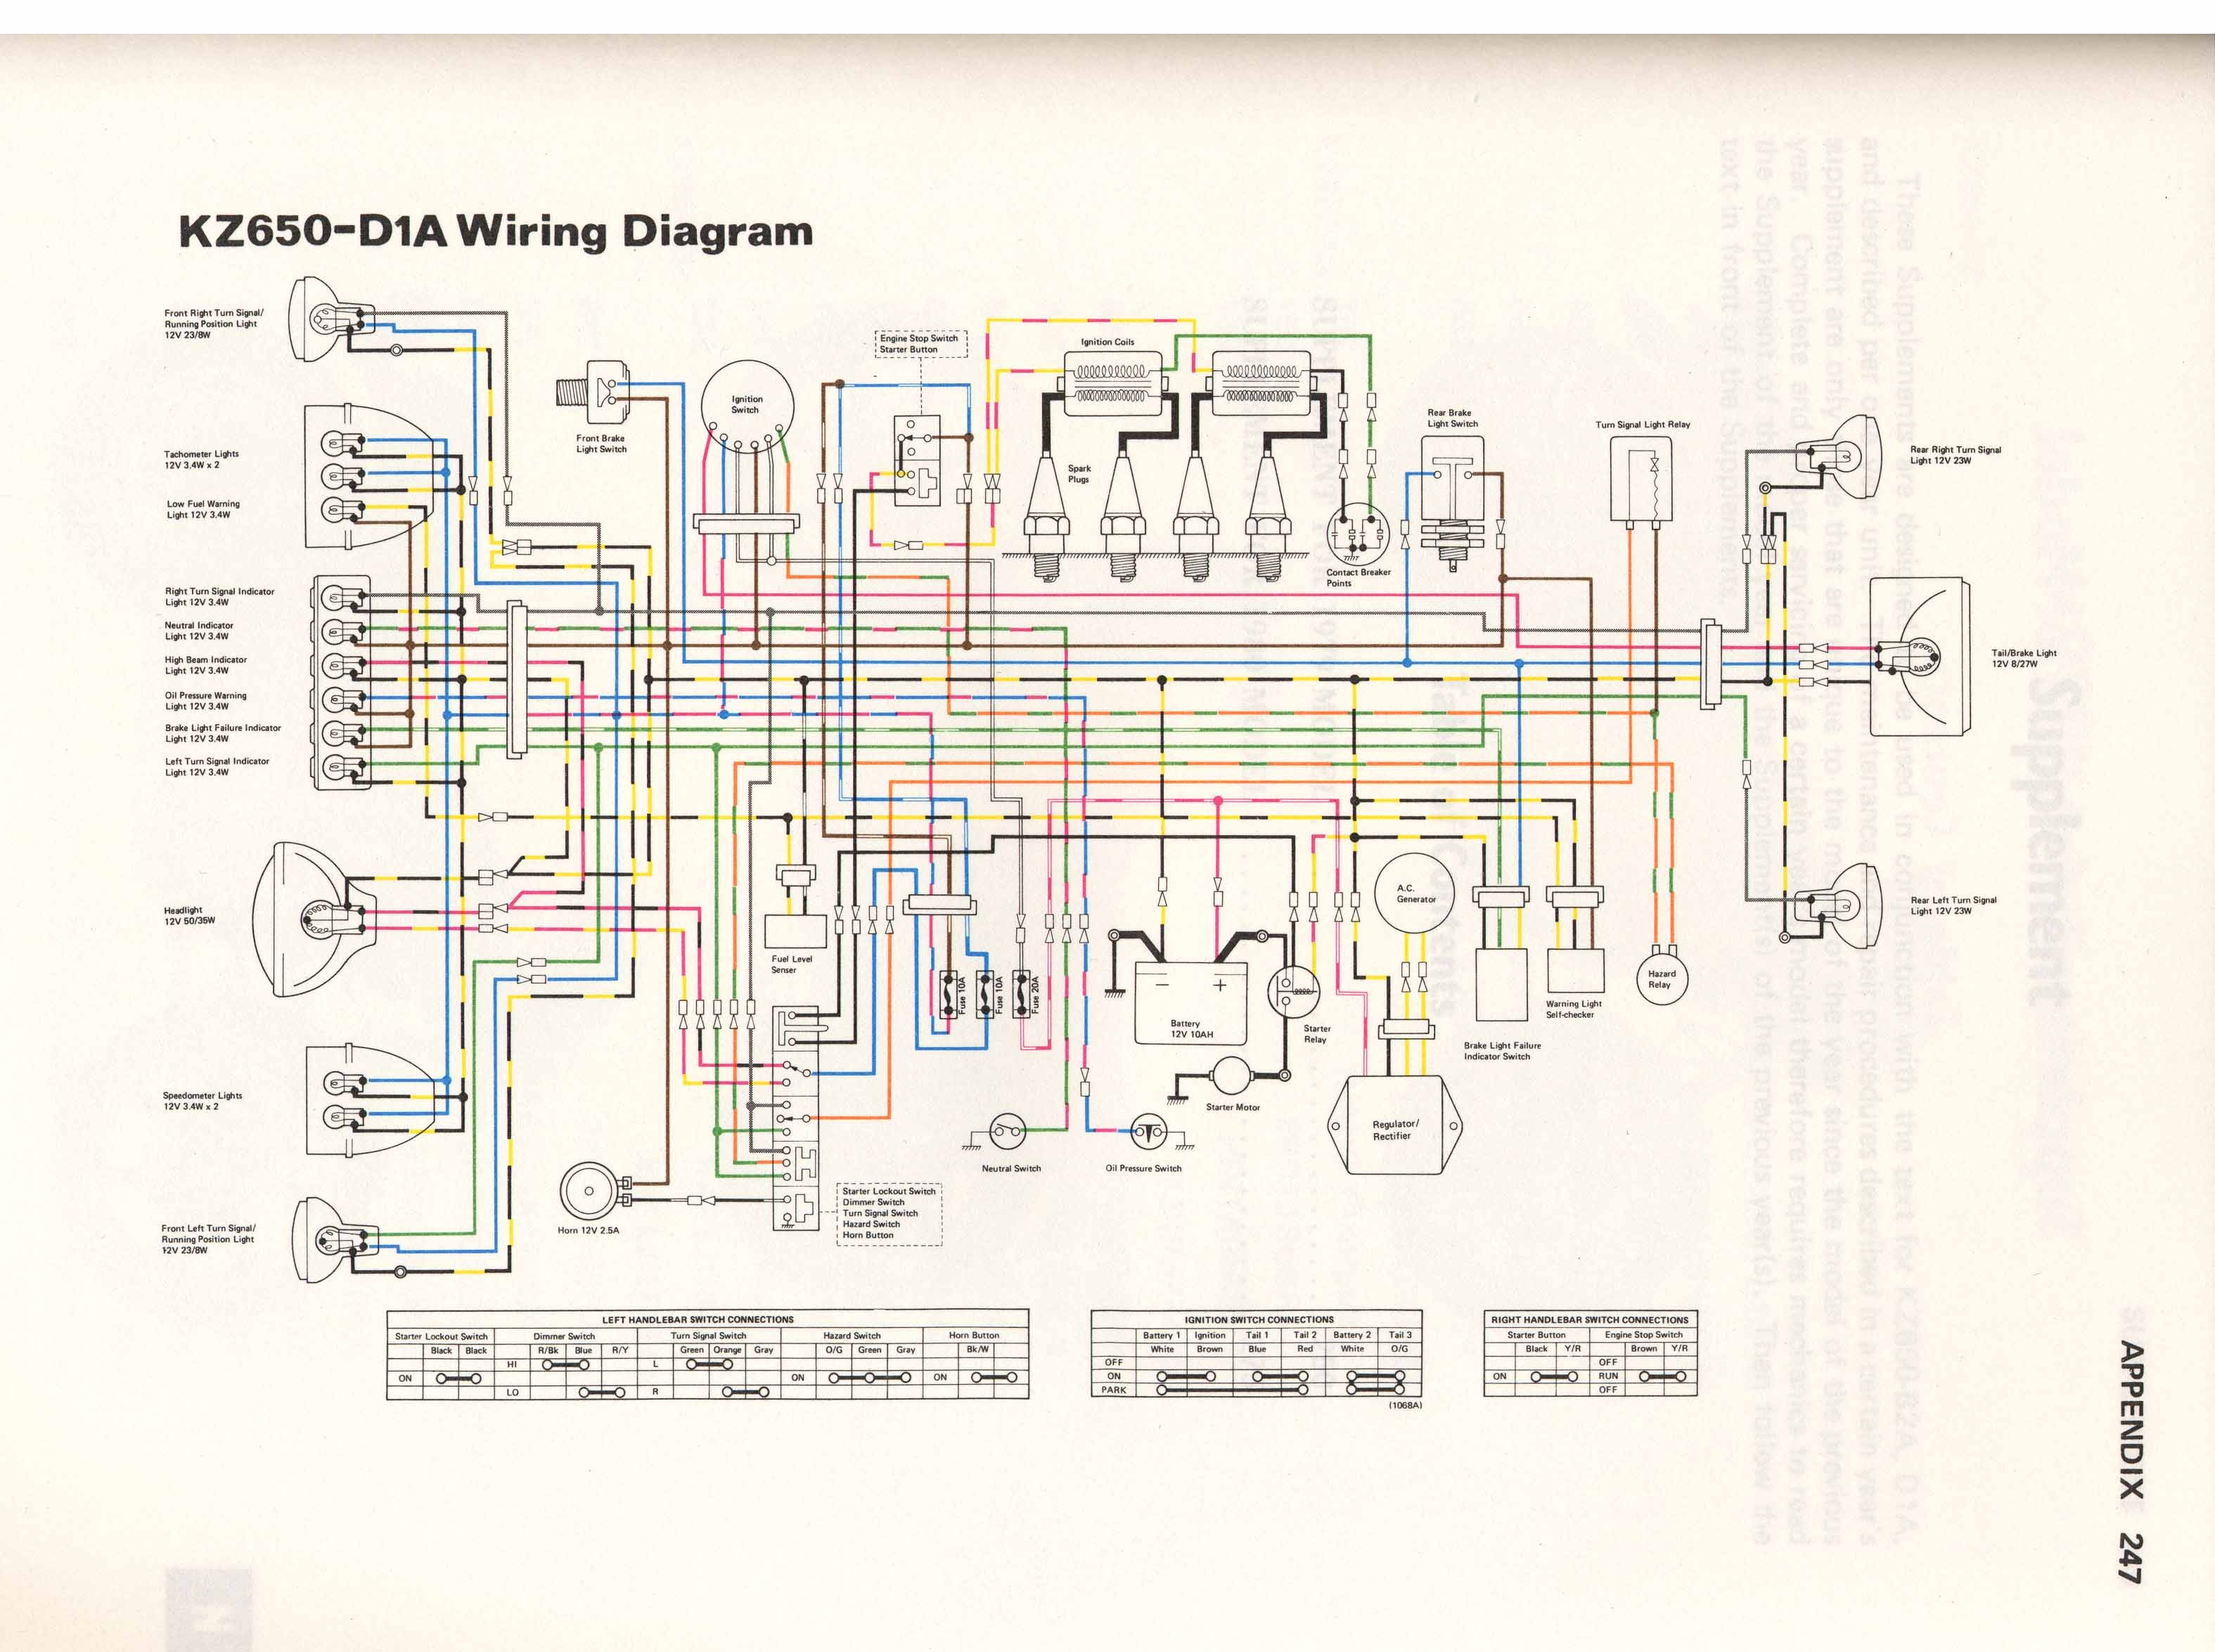 1984 Kawasaki Voyager Wiring Diagram Fuse Box Xii 1982 Kz1300 Diagrams Example Electrical Rh Huntervalleyhotels Co 1985 Specs